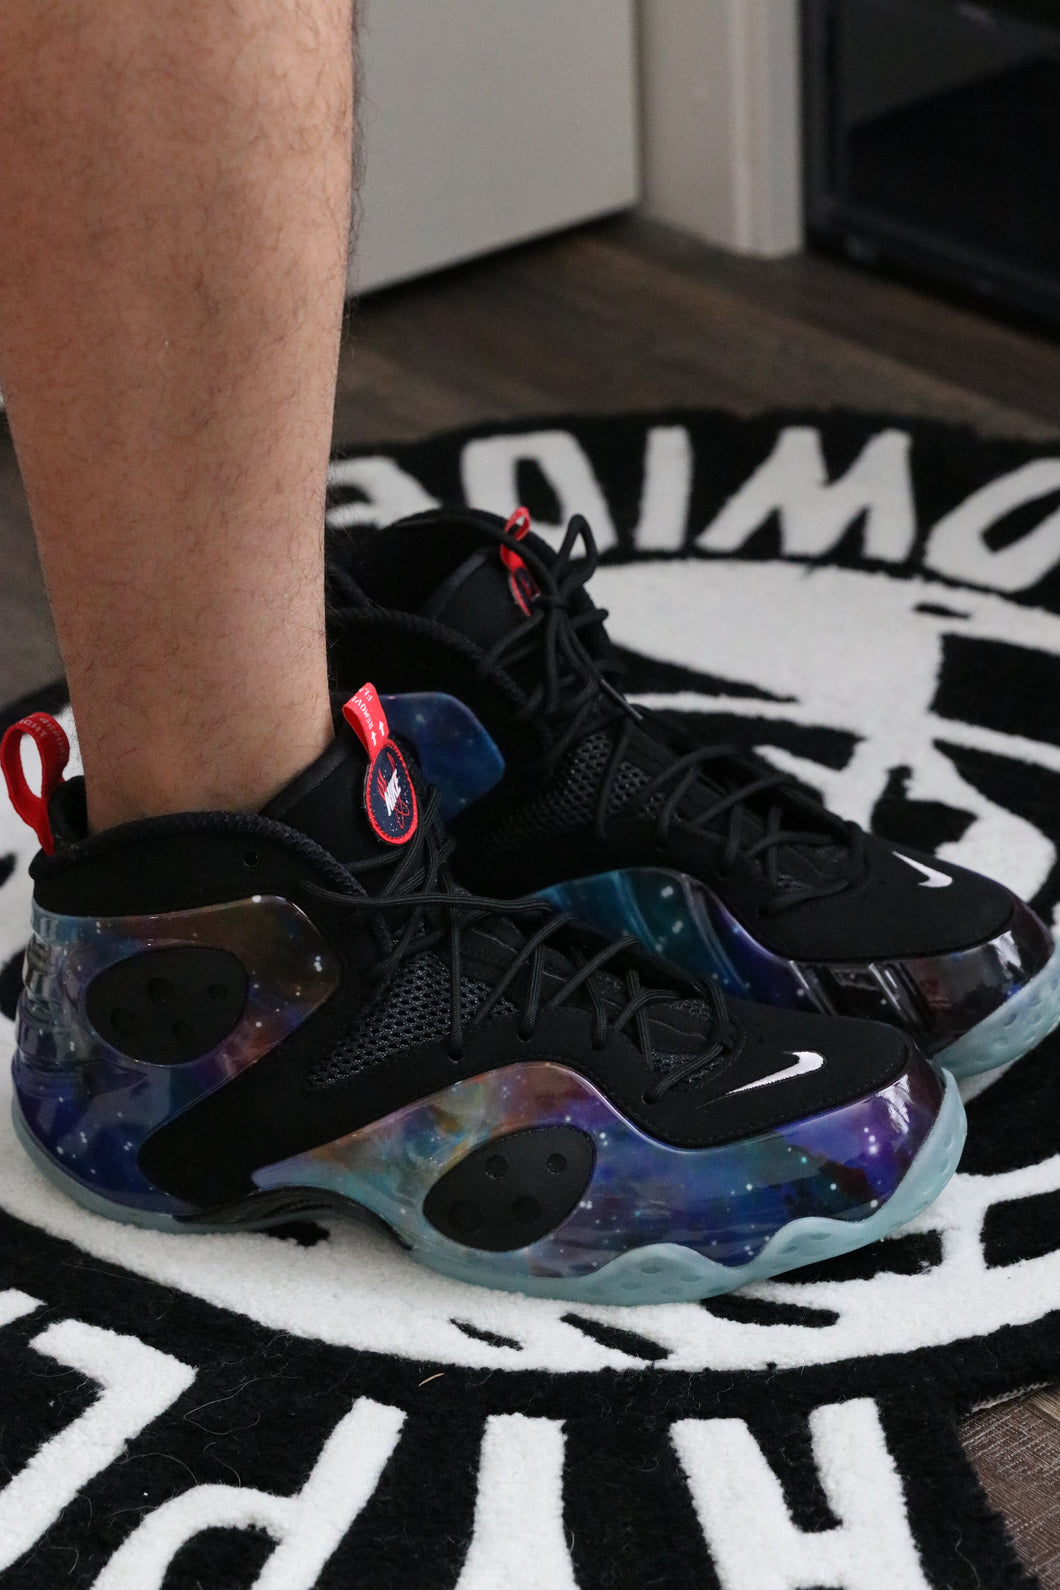 Nike Zoom Rookie Galaxy | Worn | Size 13